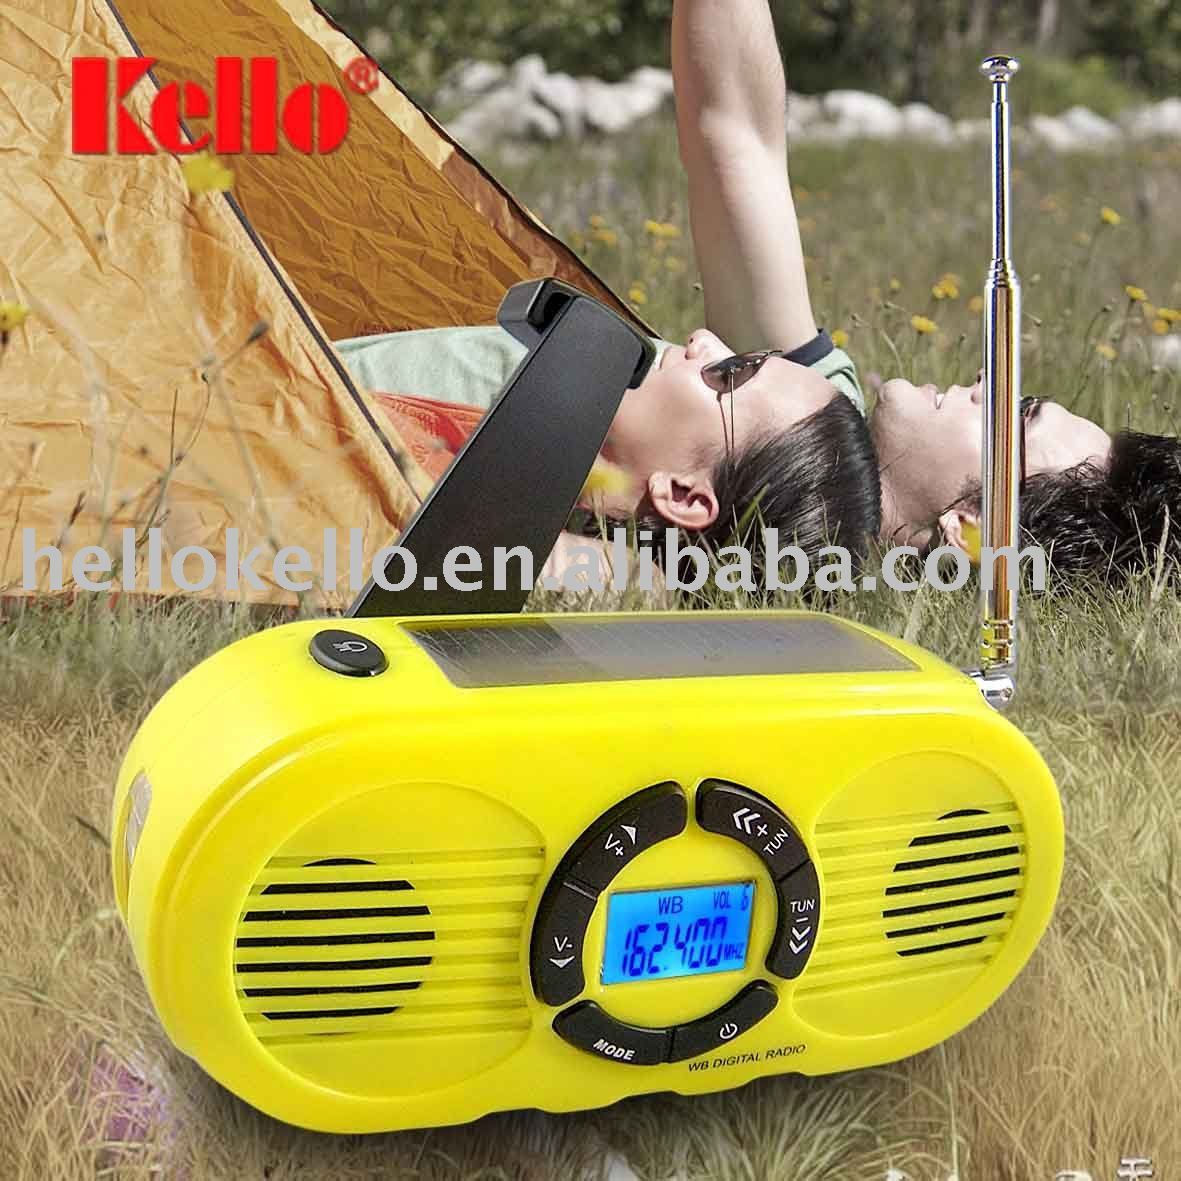 Solar hand crank dynamo LCD Digital AM/FM/NOAA Radio with LED Flashlight & Charger